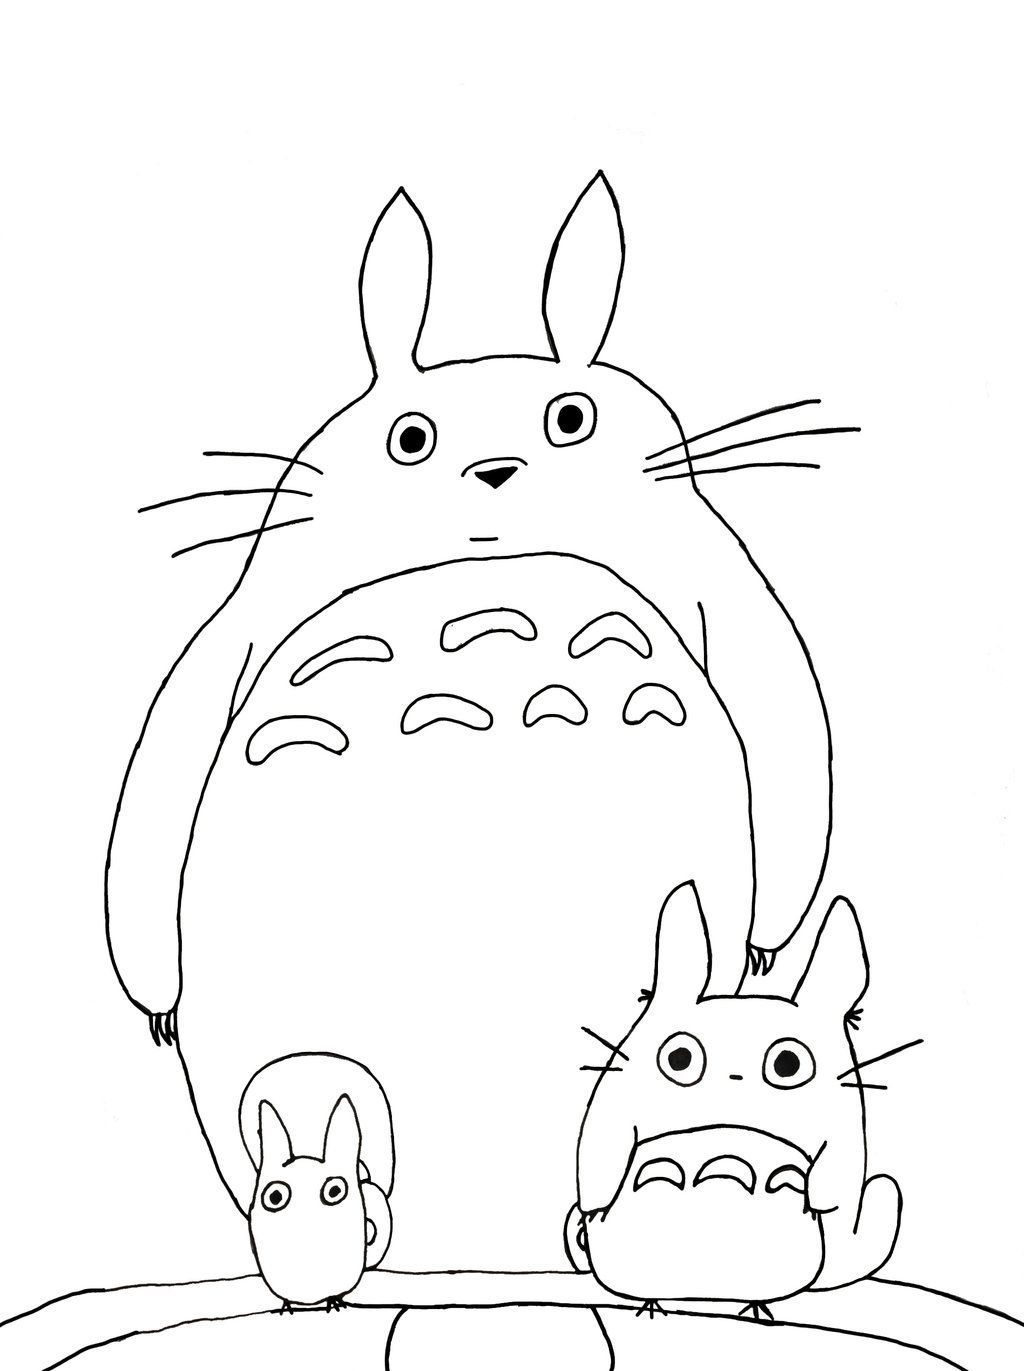 Totoro Free Coloring Pages On Masivy World Totoro Free Coloring Pages Coloring Pages [ 1371 x 1024 Pixel ]